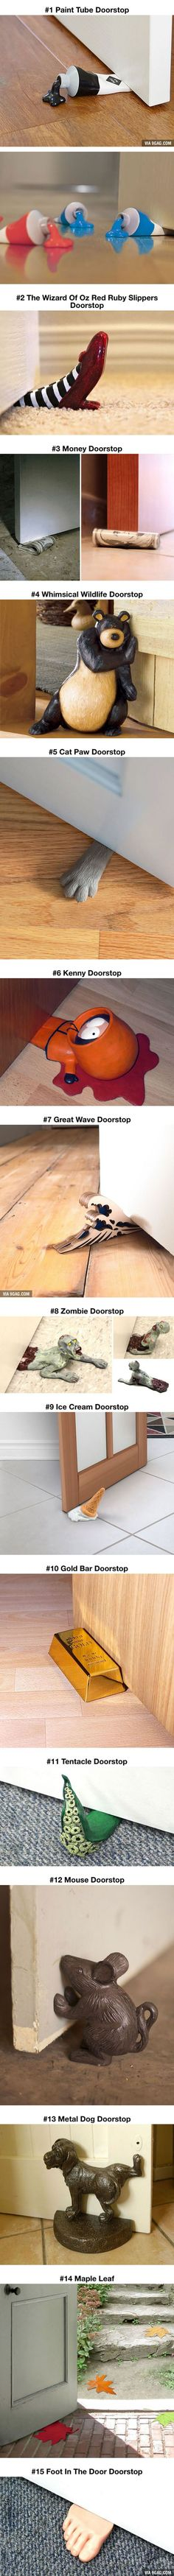 Some great ideas here fpr doorstops- beats a wedge of old wood ! #LoveLimeLace  @limelace